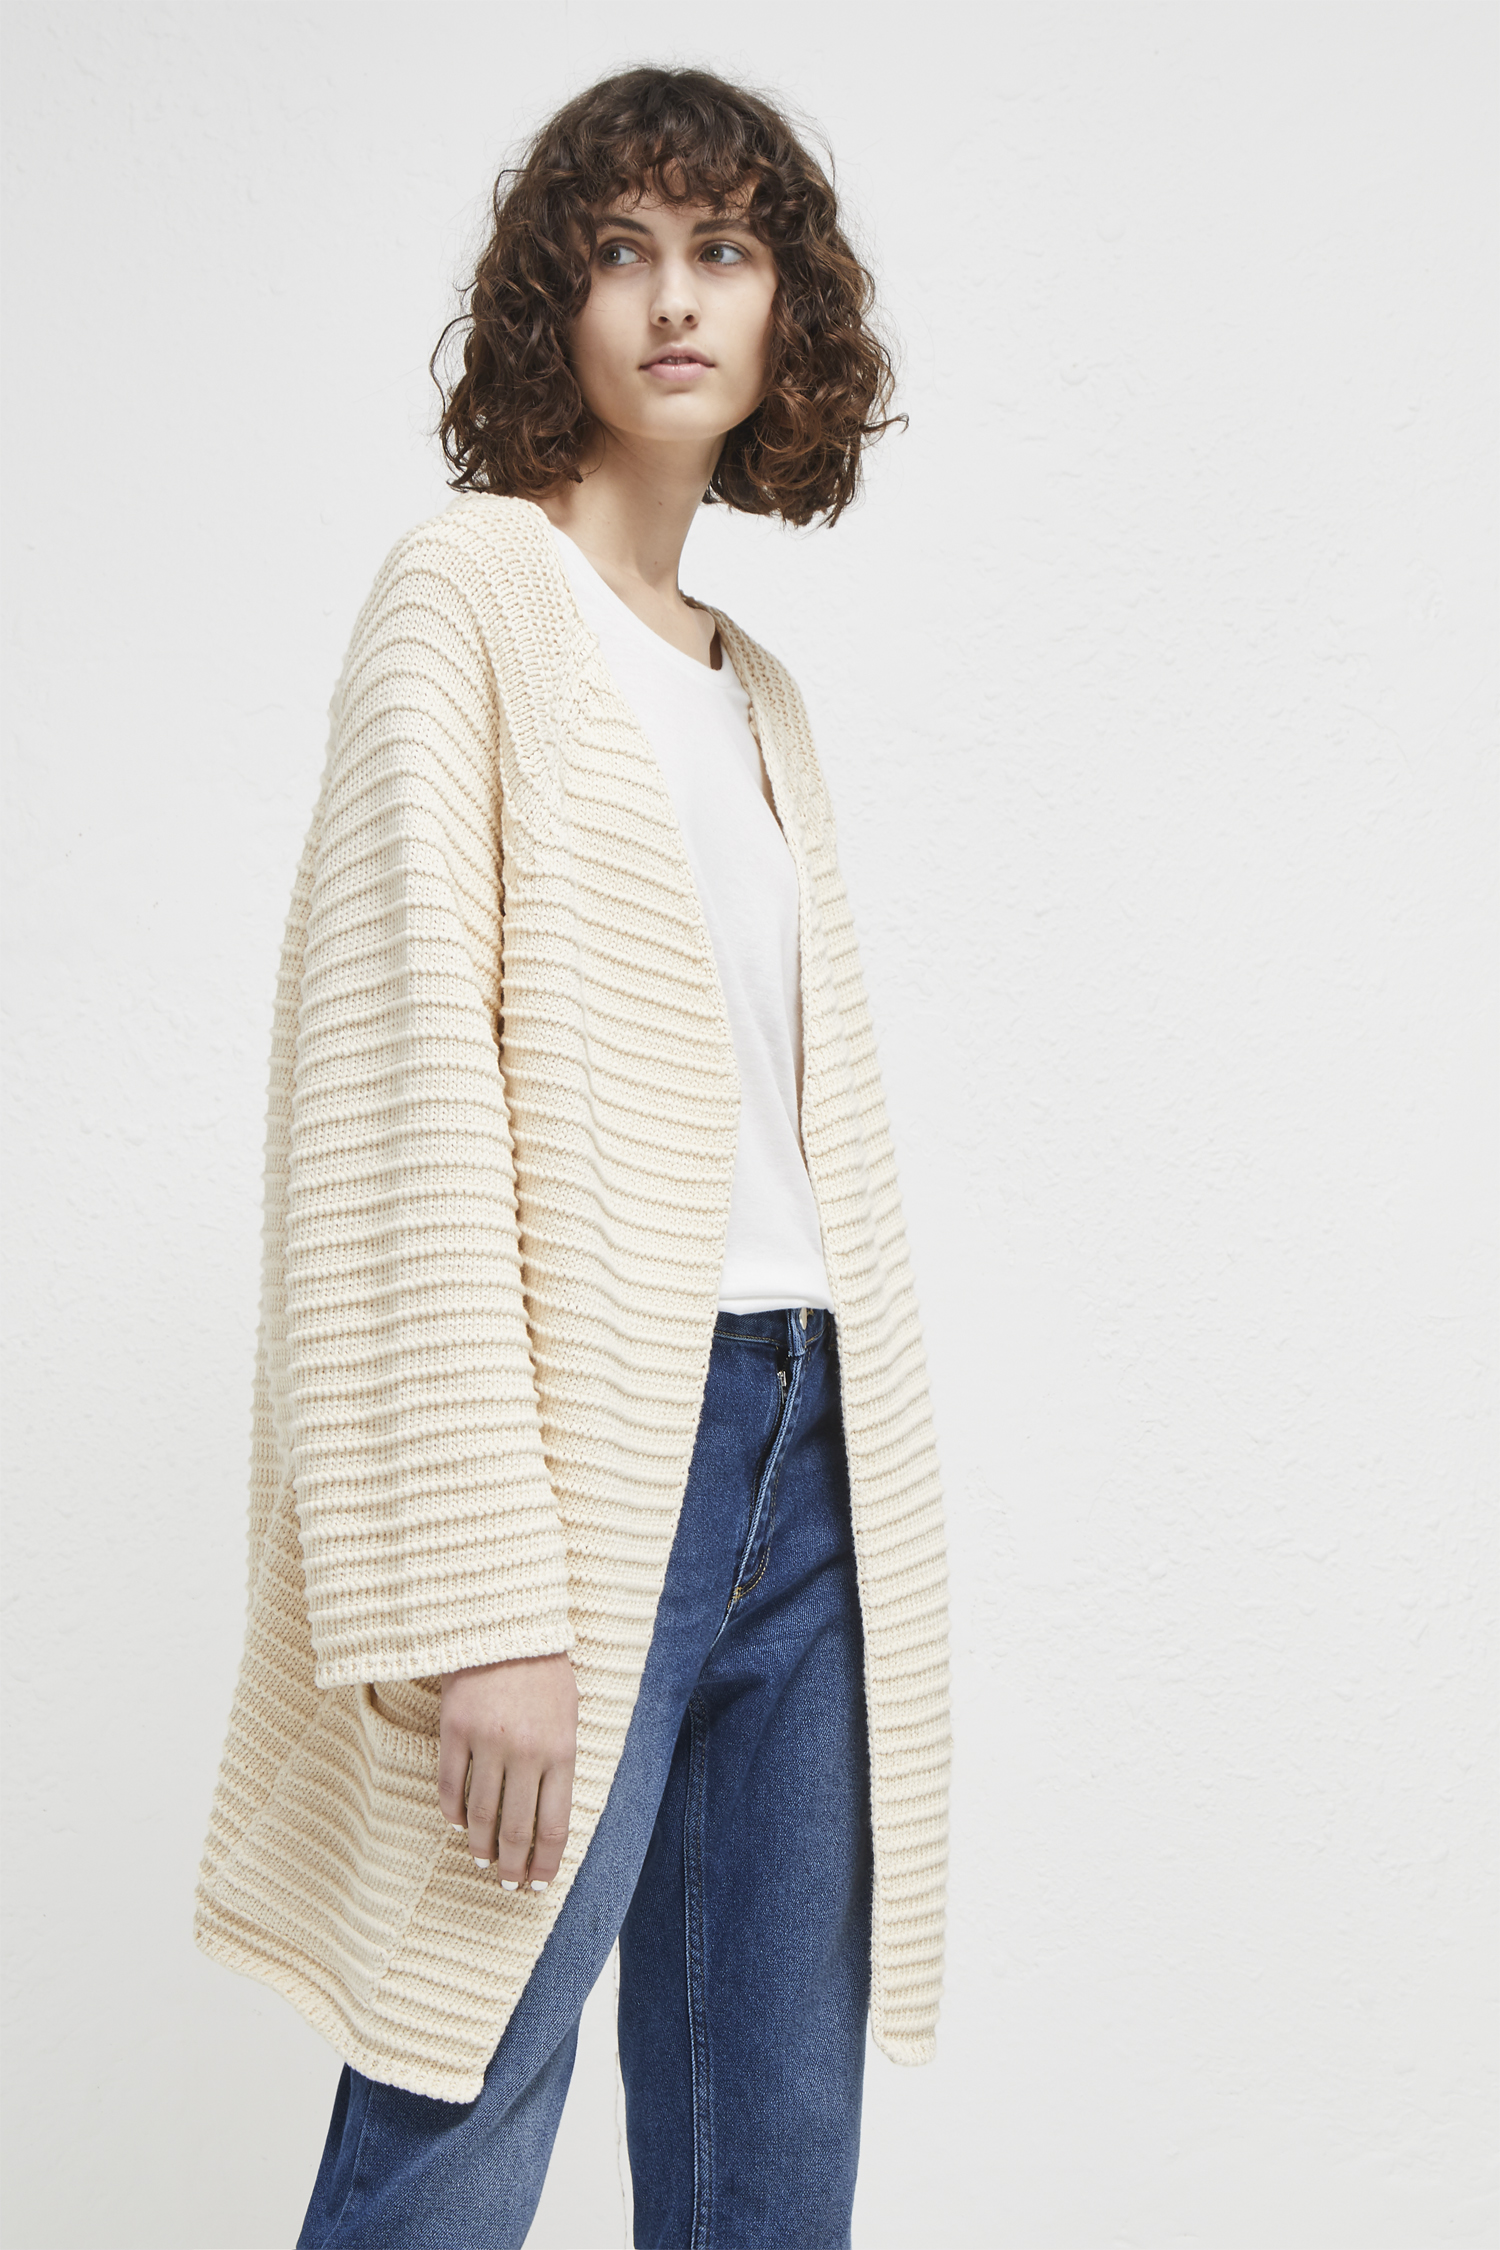 Sale Best Prices Geniue Stockist Cheap Price KNITWEAR - Cardigans French Connection Buy Online Authentic Discount Wide Range Of aMY4T